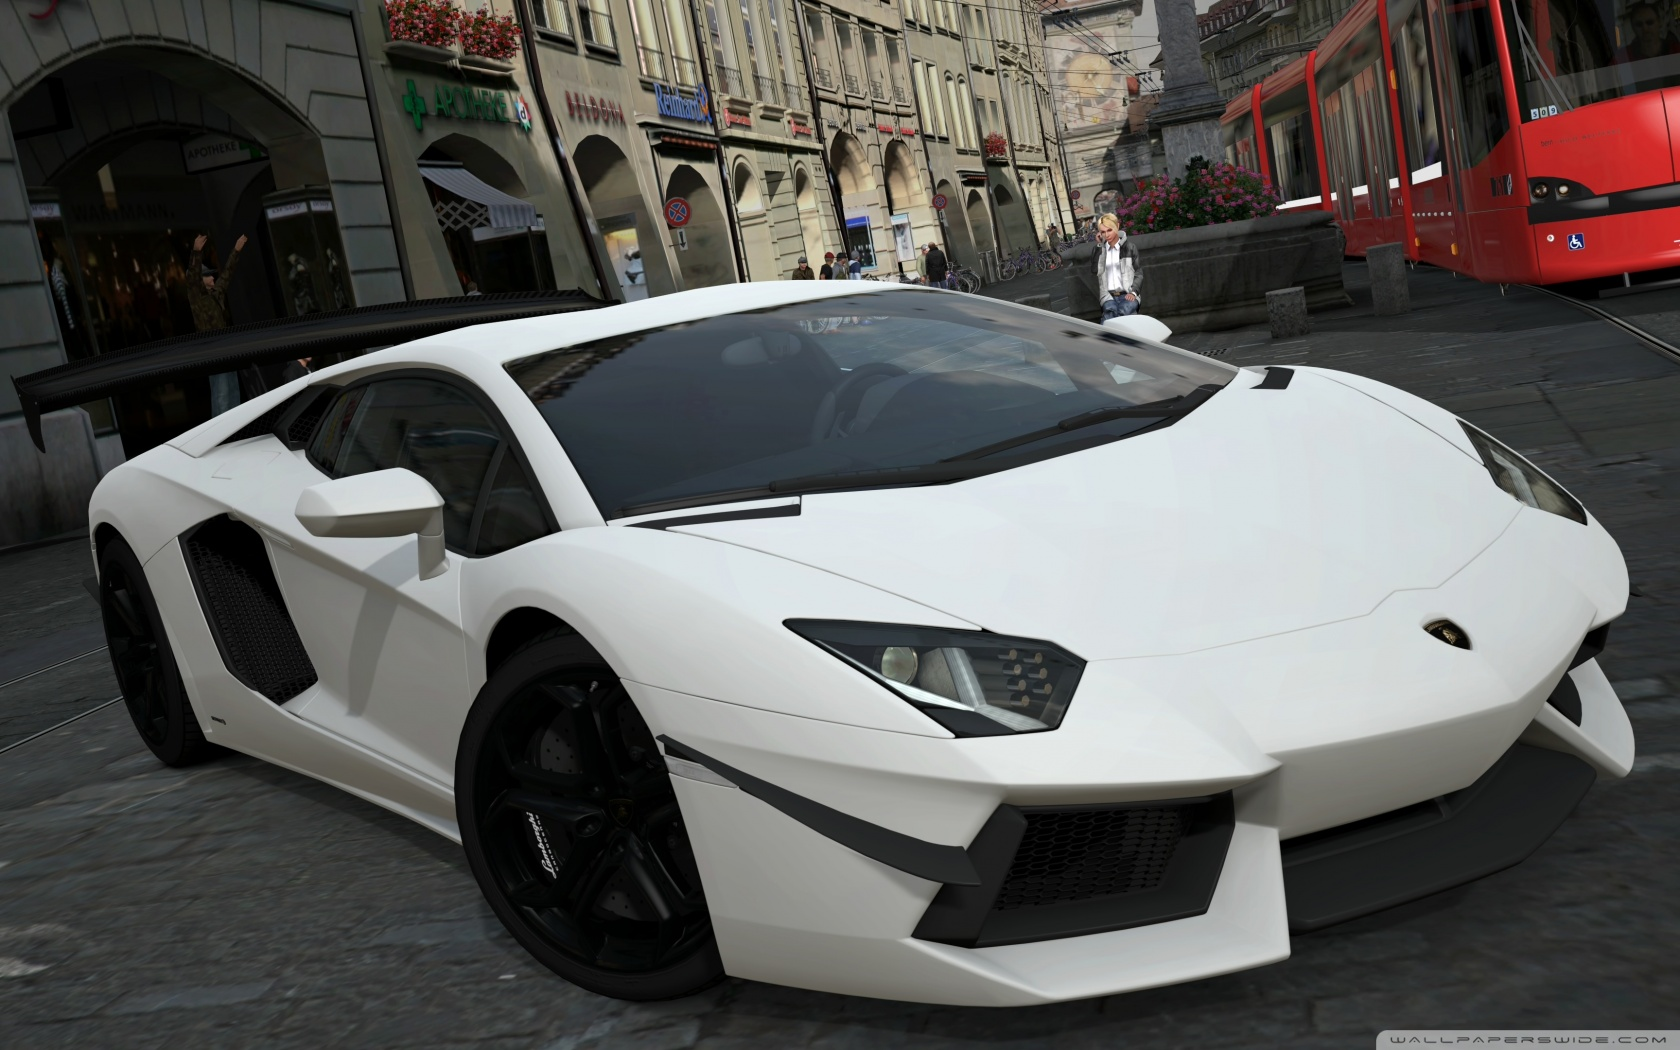 White Lamborghini Aventador LP700-4 Photo